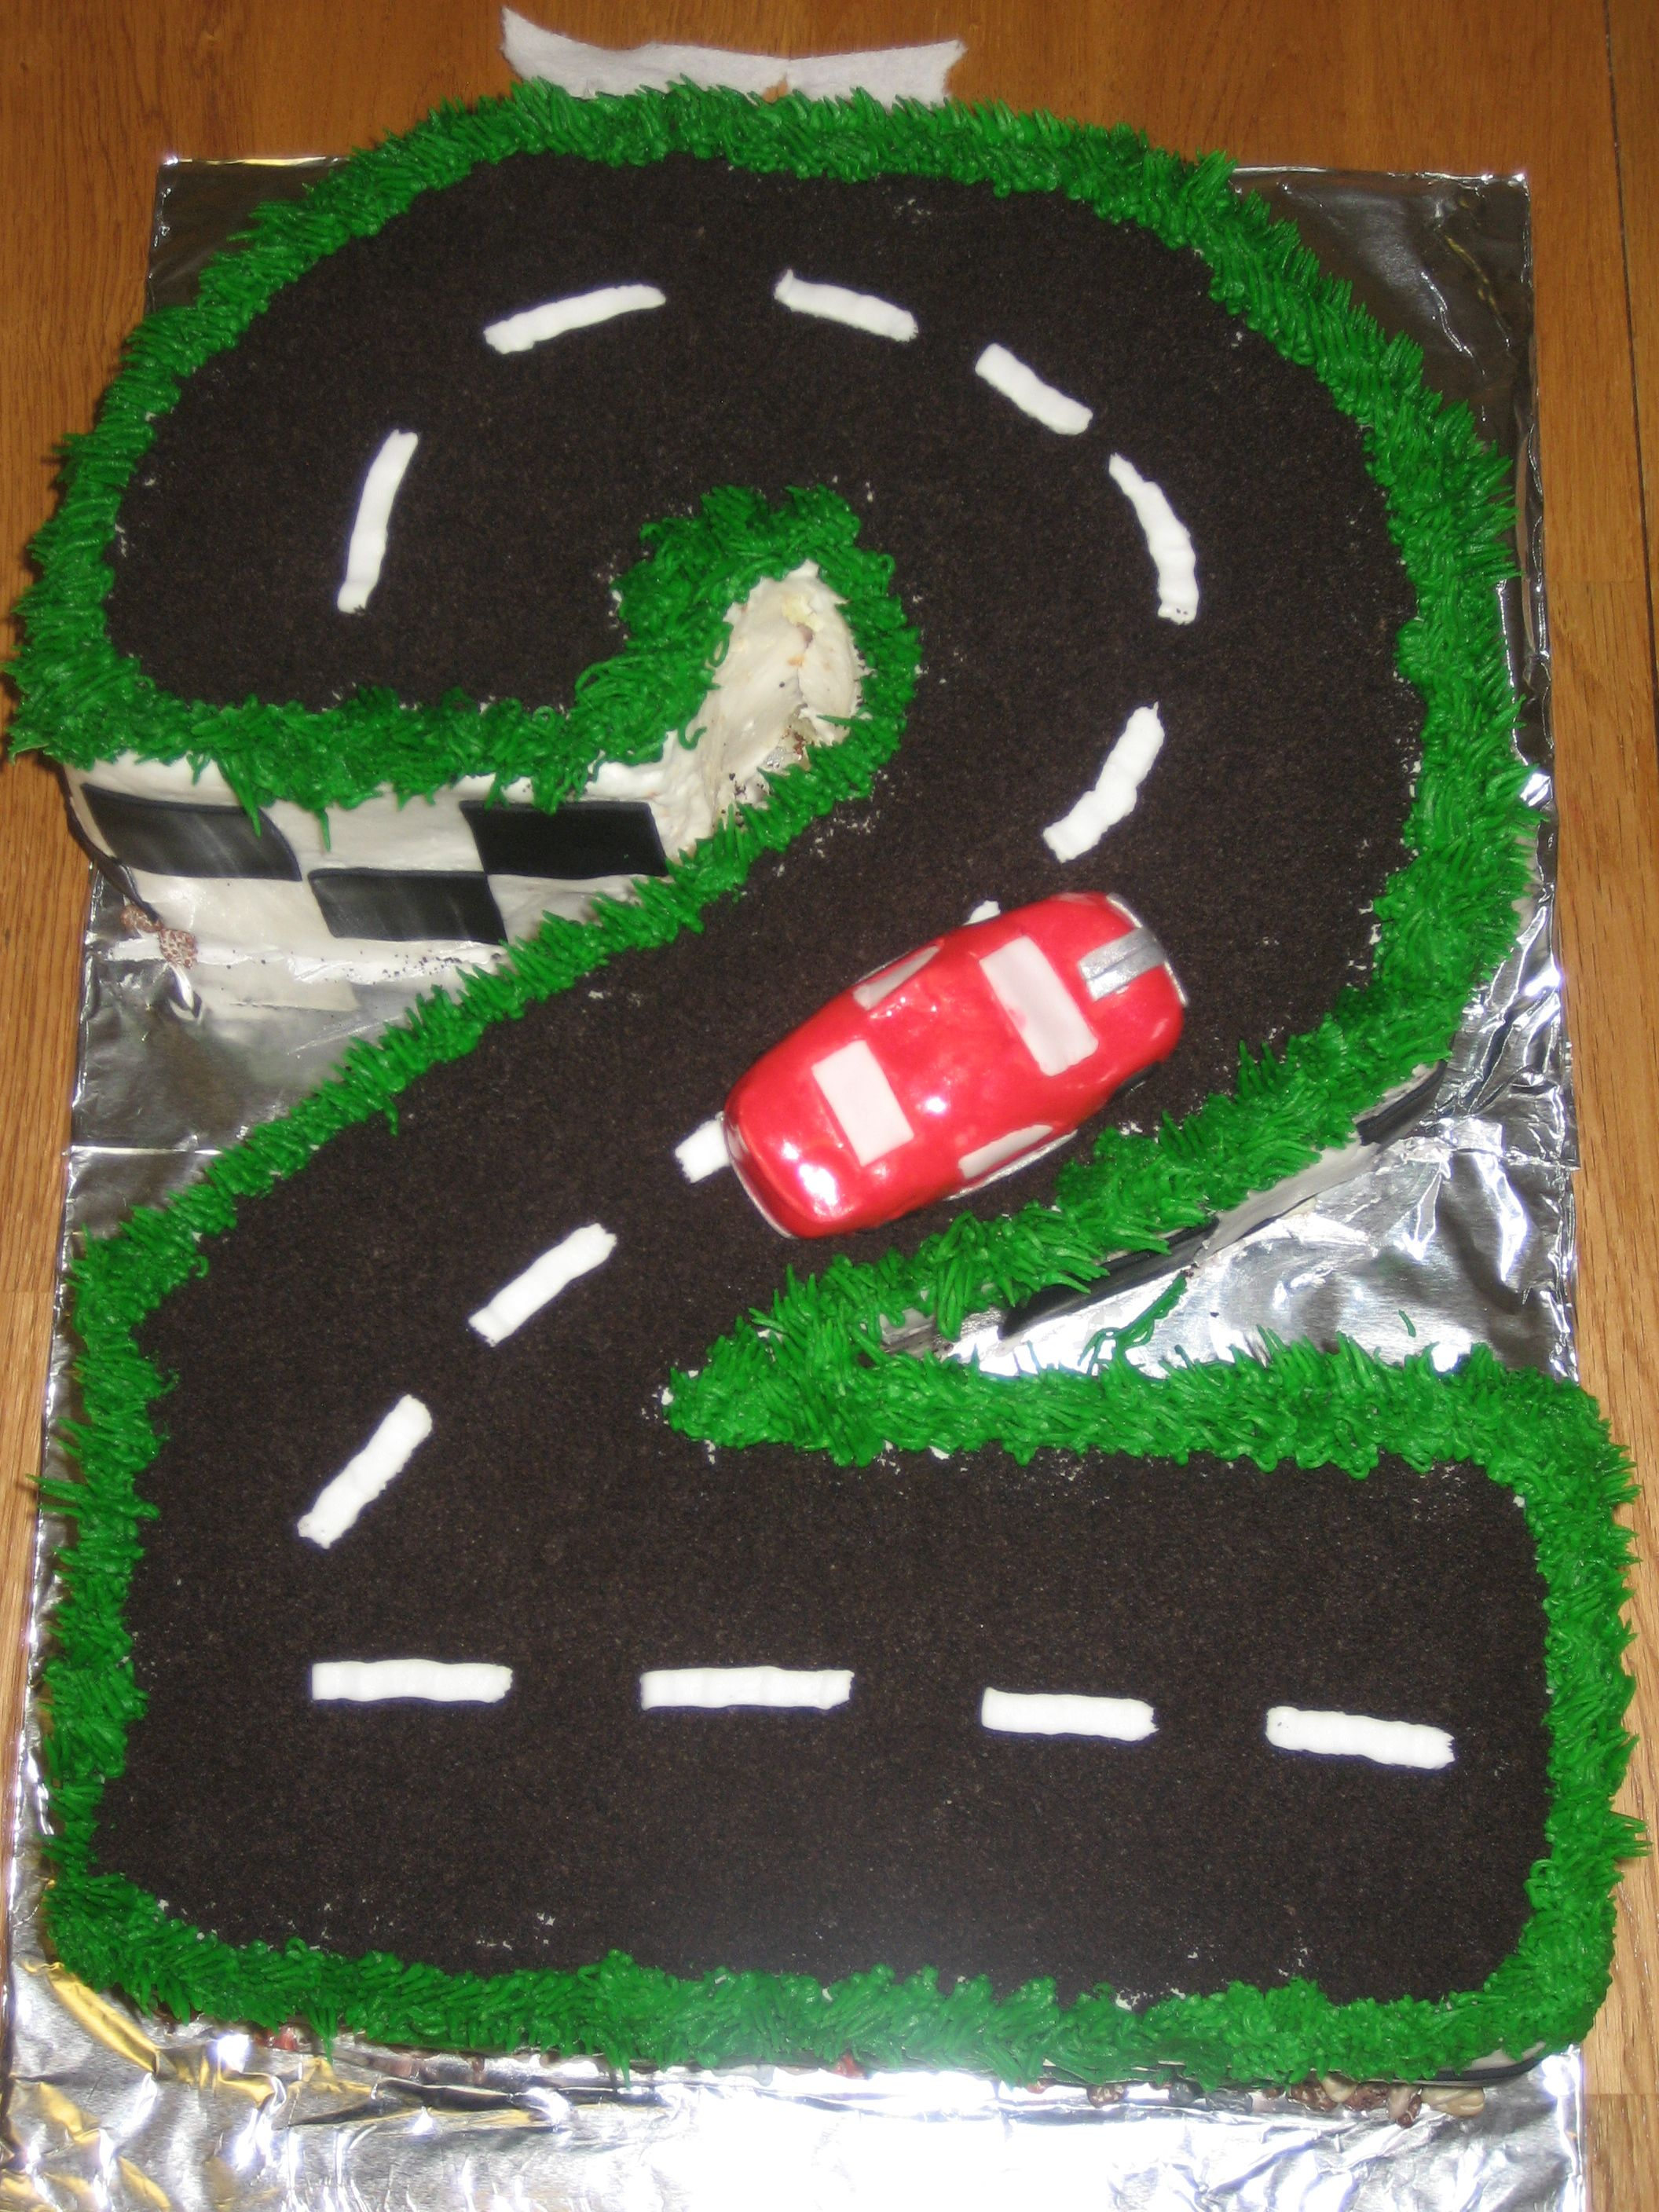 2 Year Old S Car Cake 2 Year Old Birthday Cake Cars Birthday